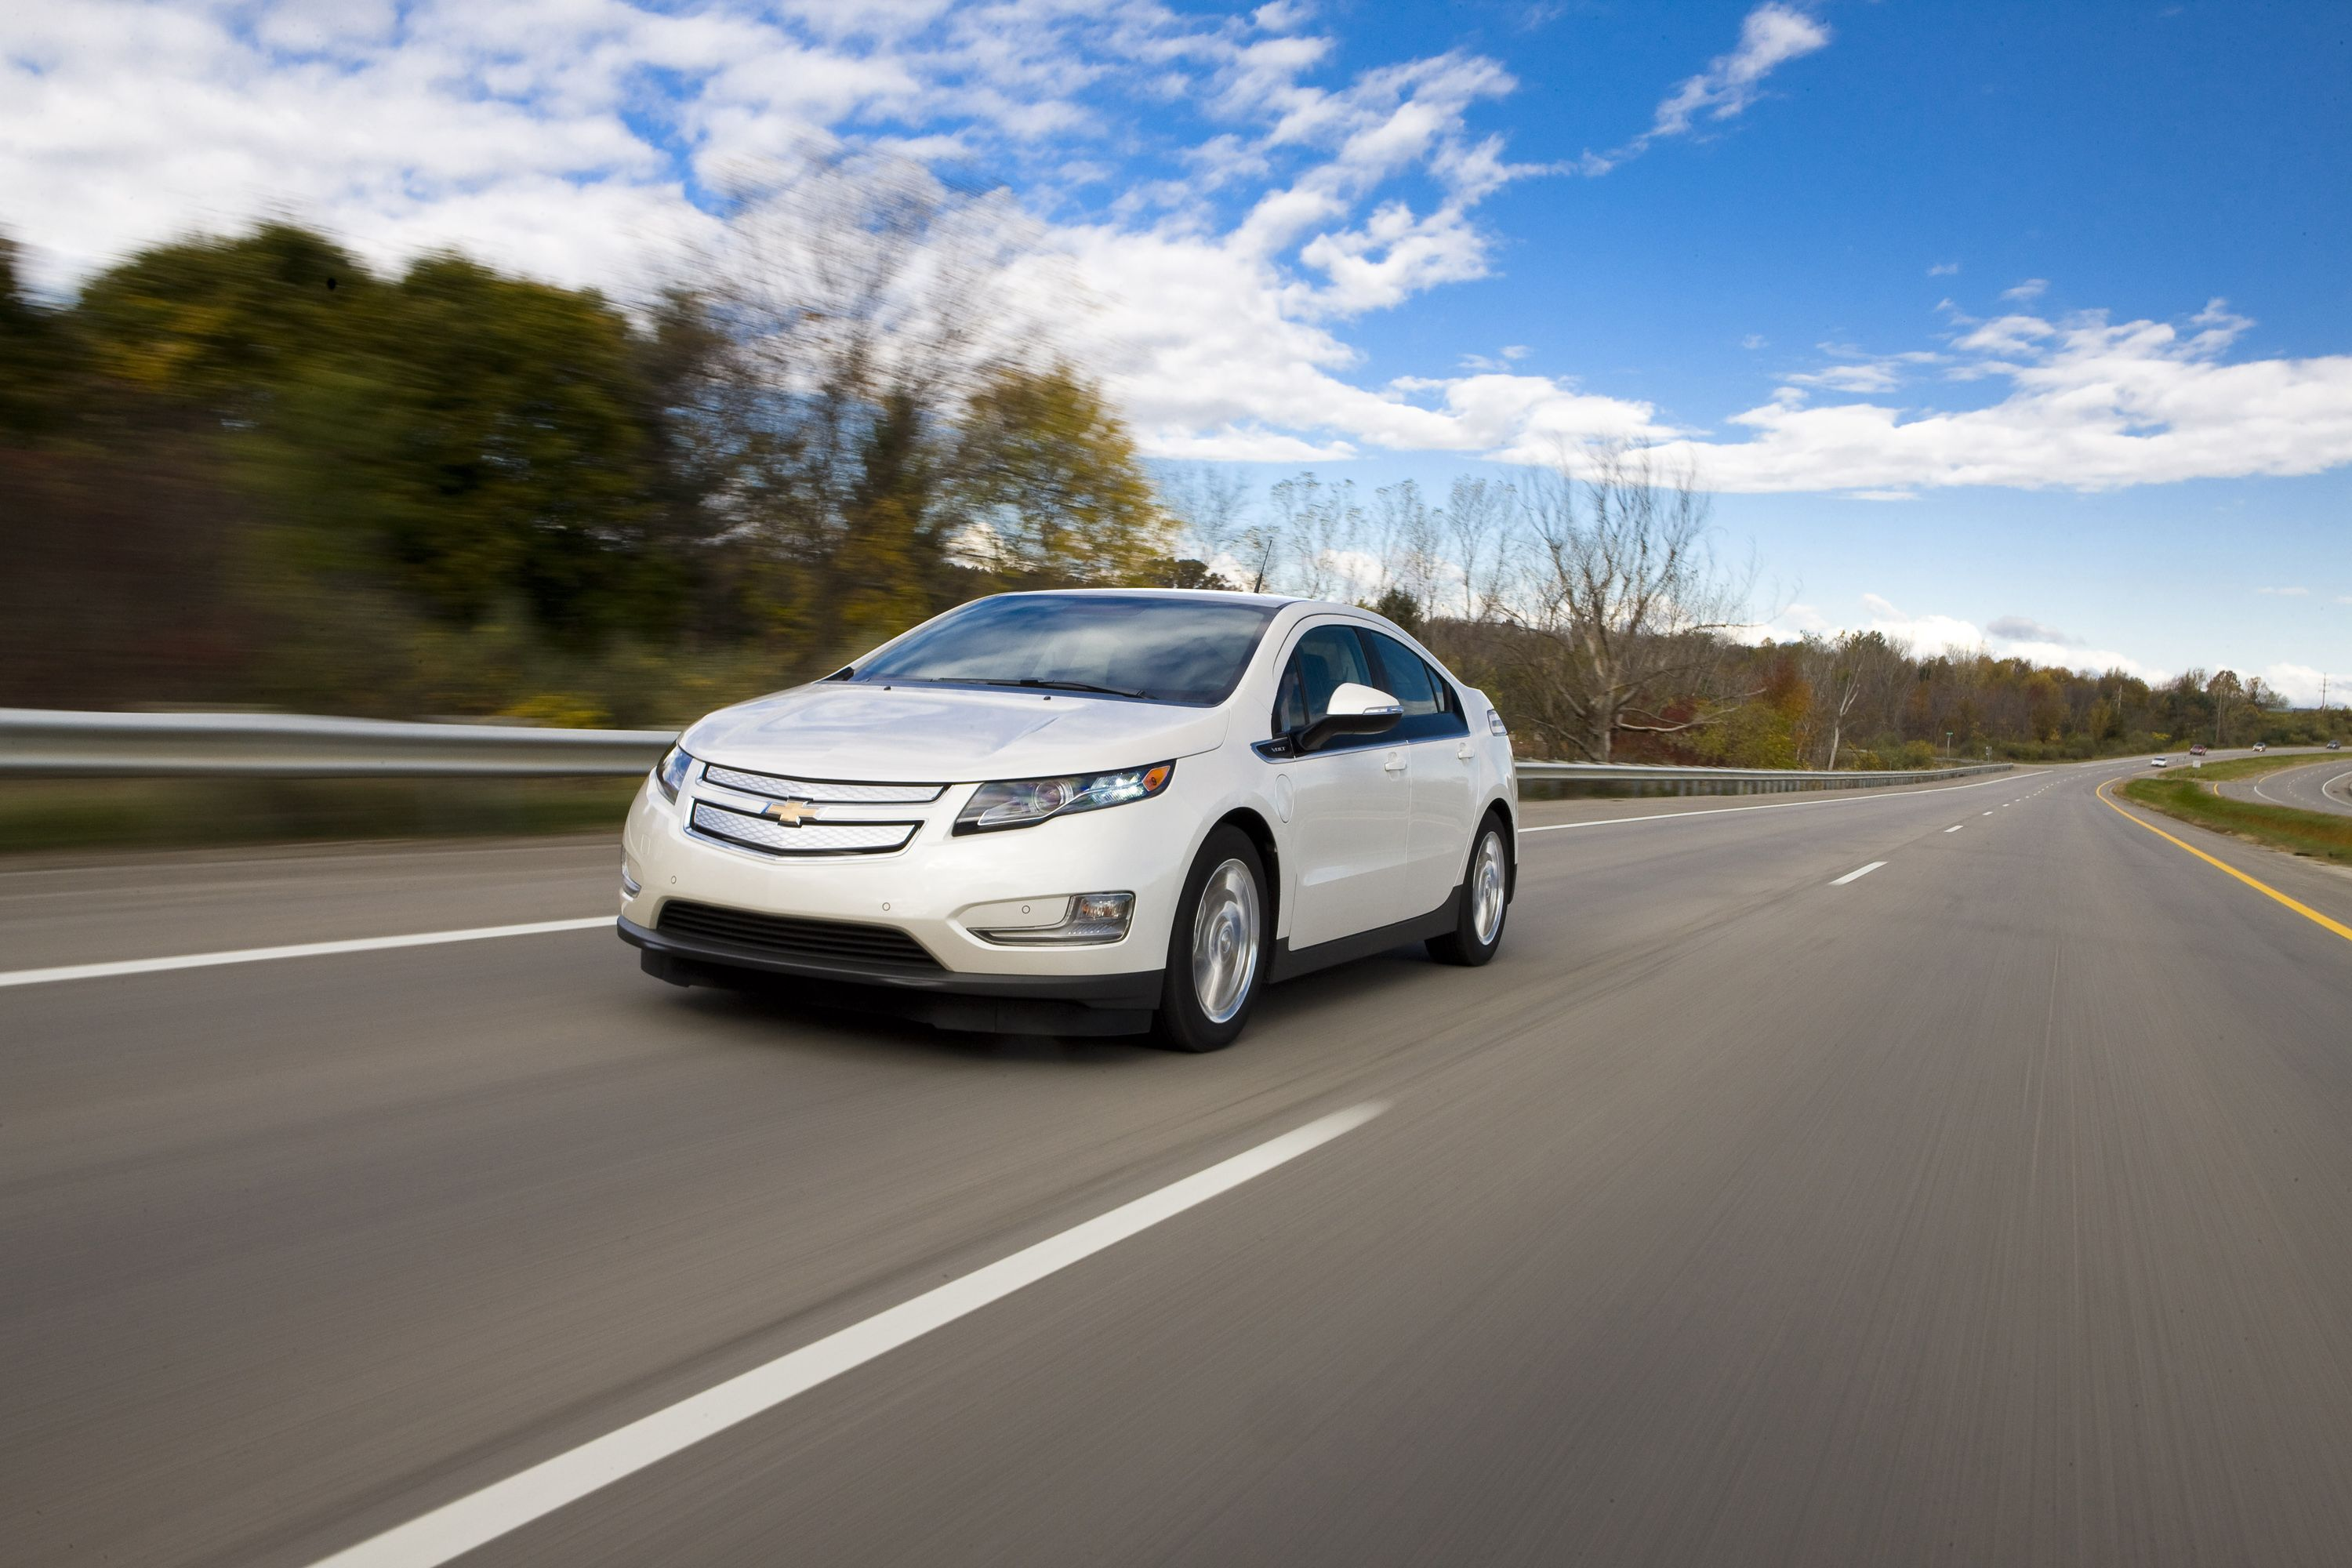 GM Reduces MSRP of Chevrolet Volt by $5,000 for 2014